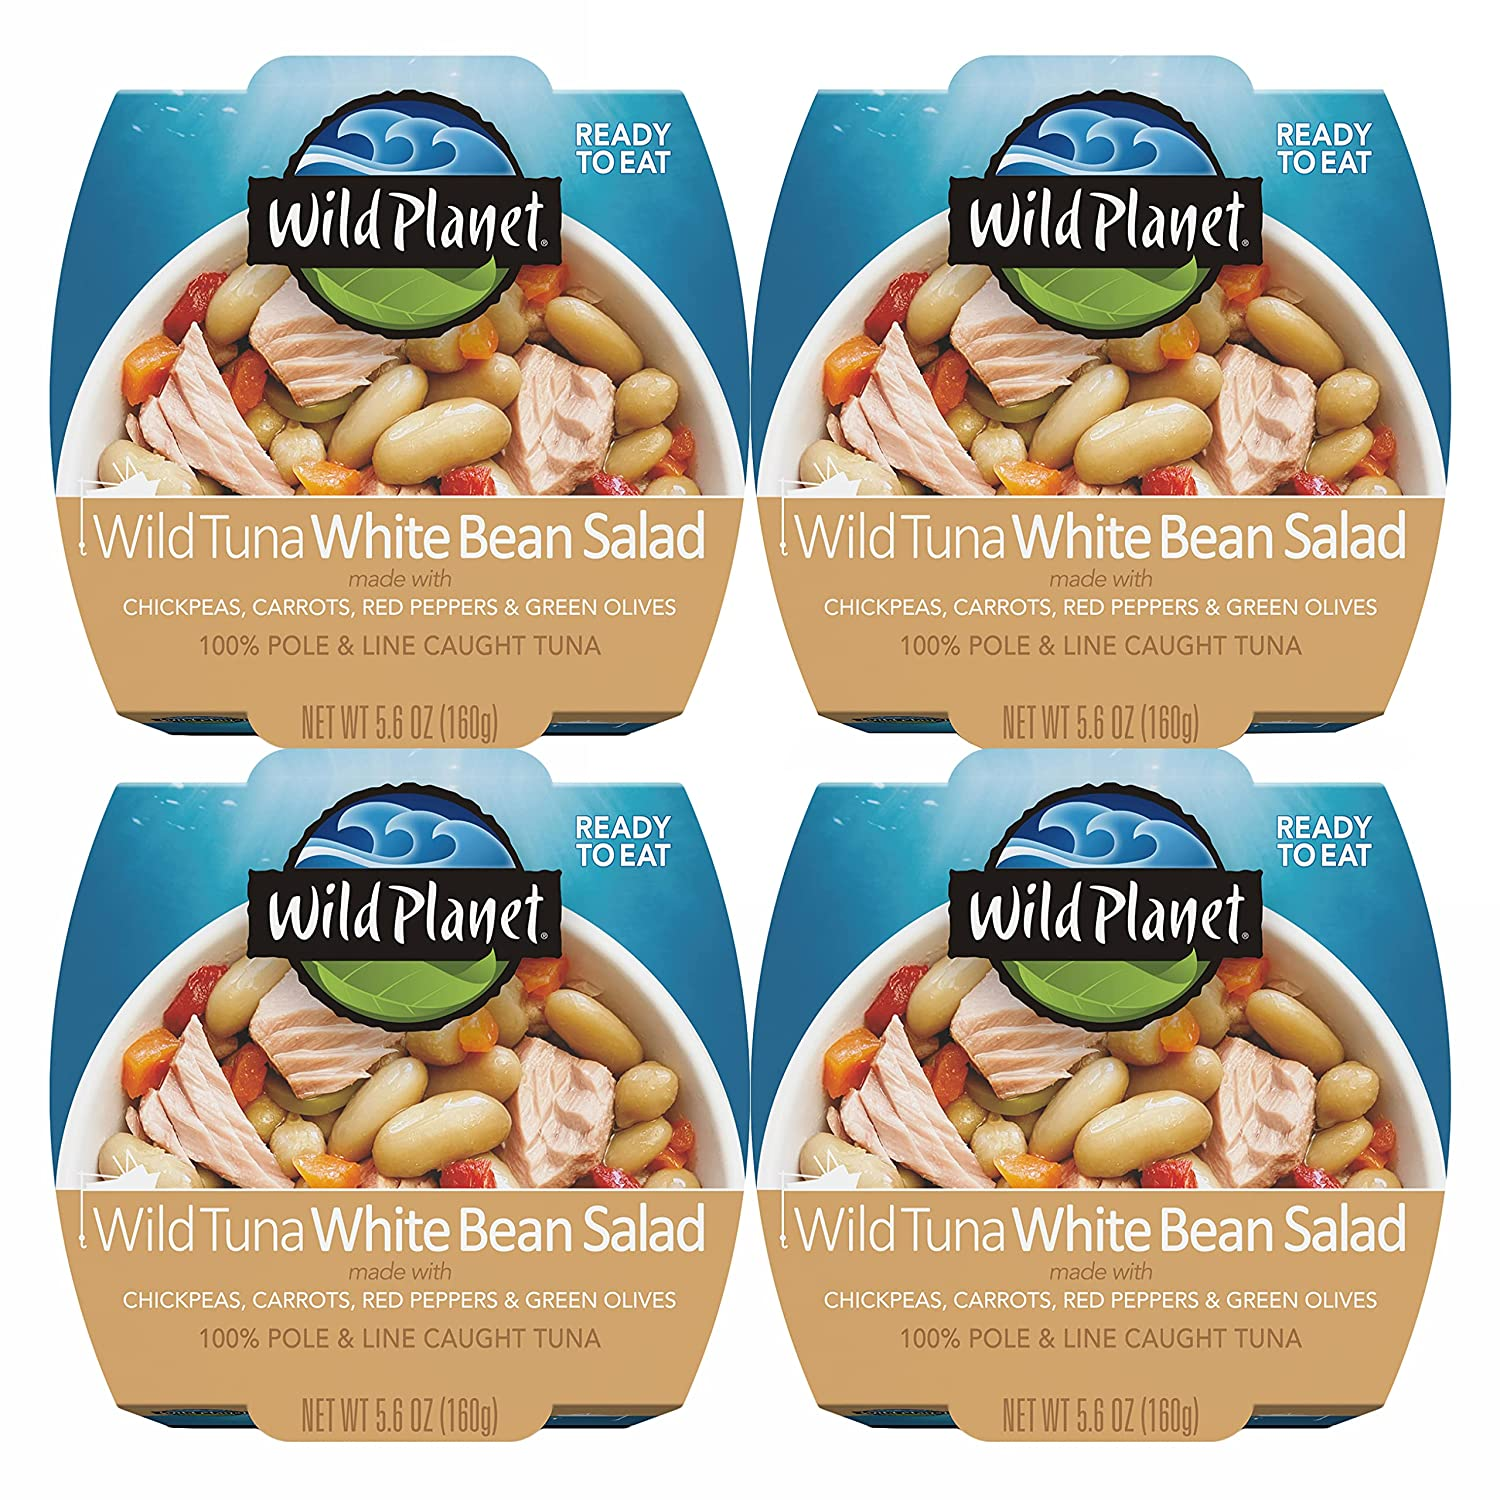 Wild Planet Ready-To-Eat Wild Tuna White Bean Salad With Organic Chickpeas, Carrots, Red Peppers & Green Olives, 5.6oz, (Pack Of 4), 4Count